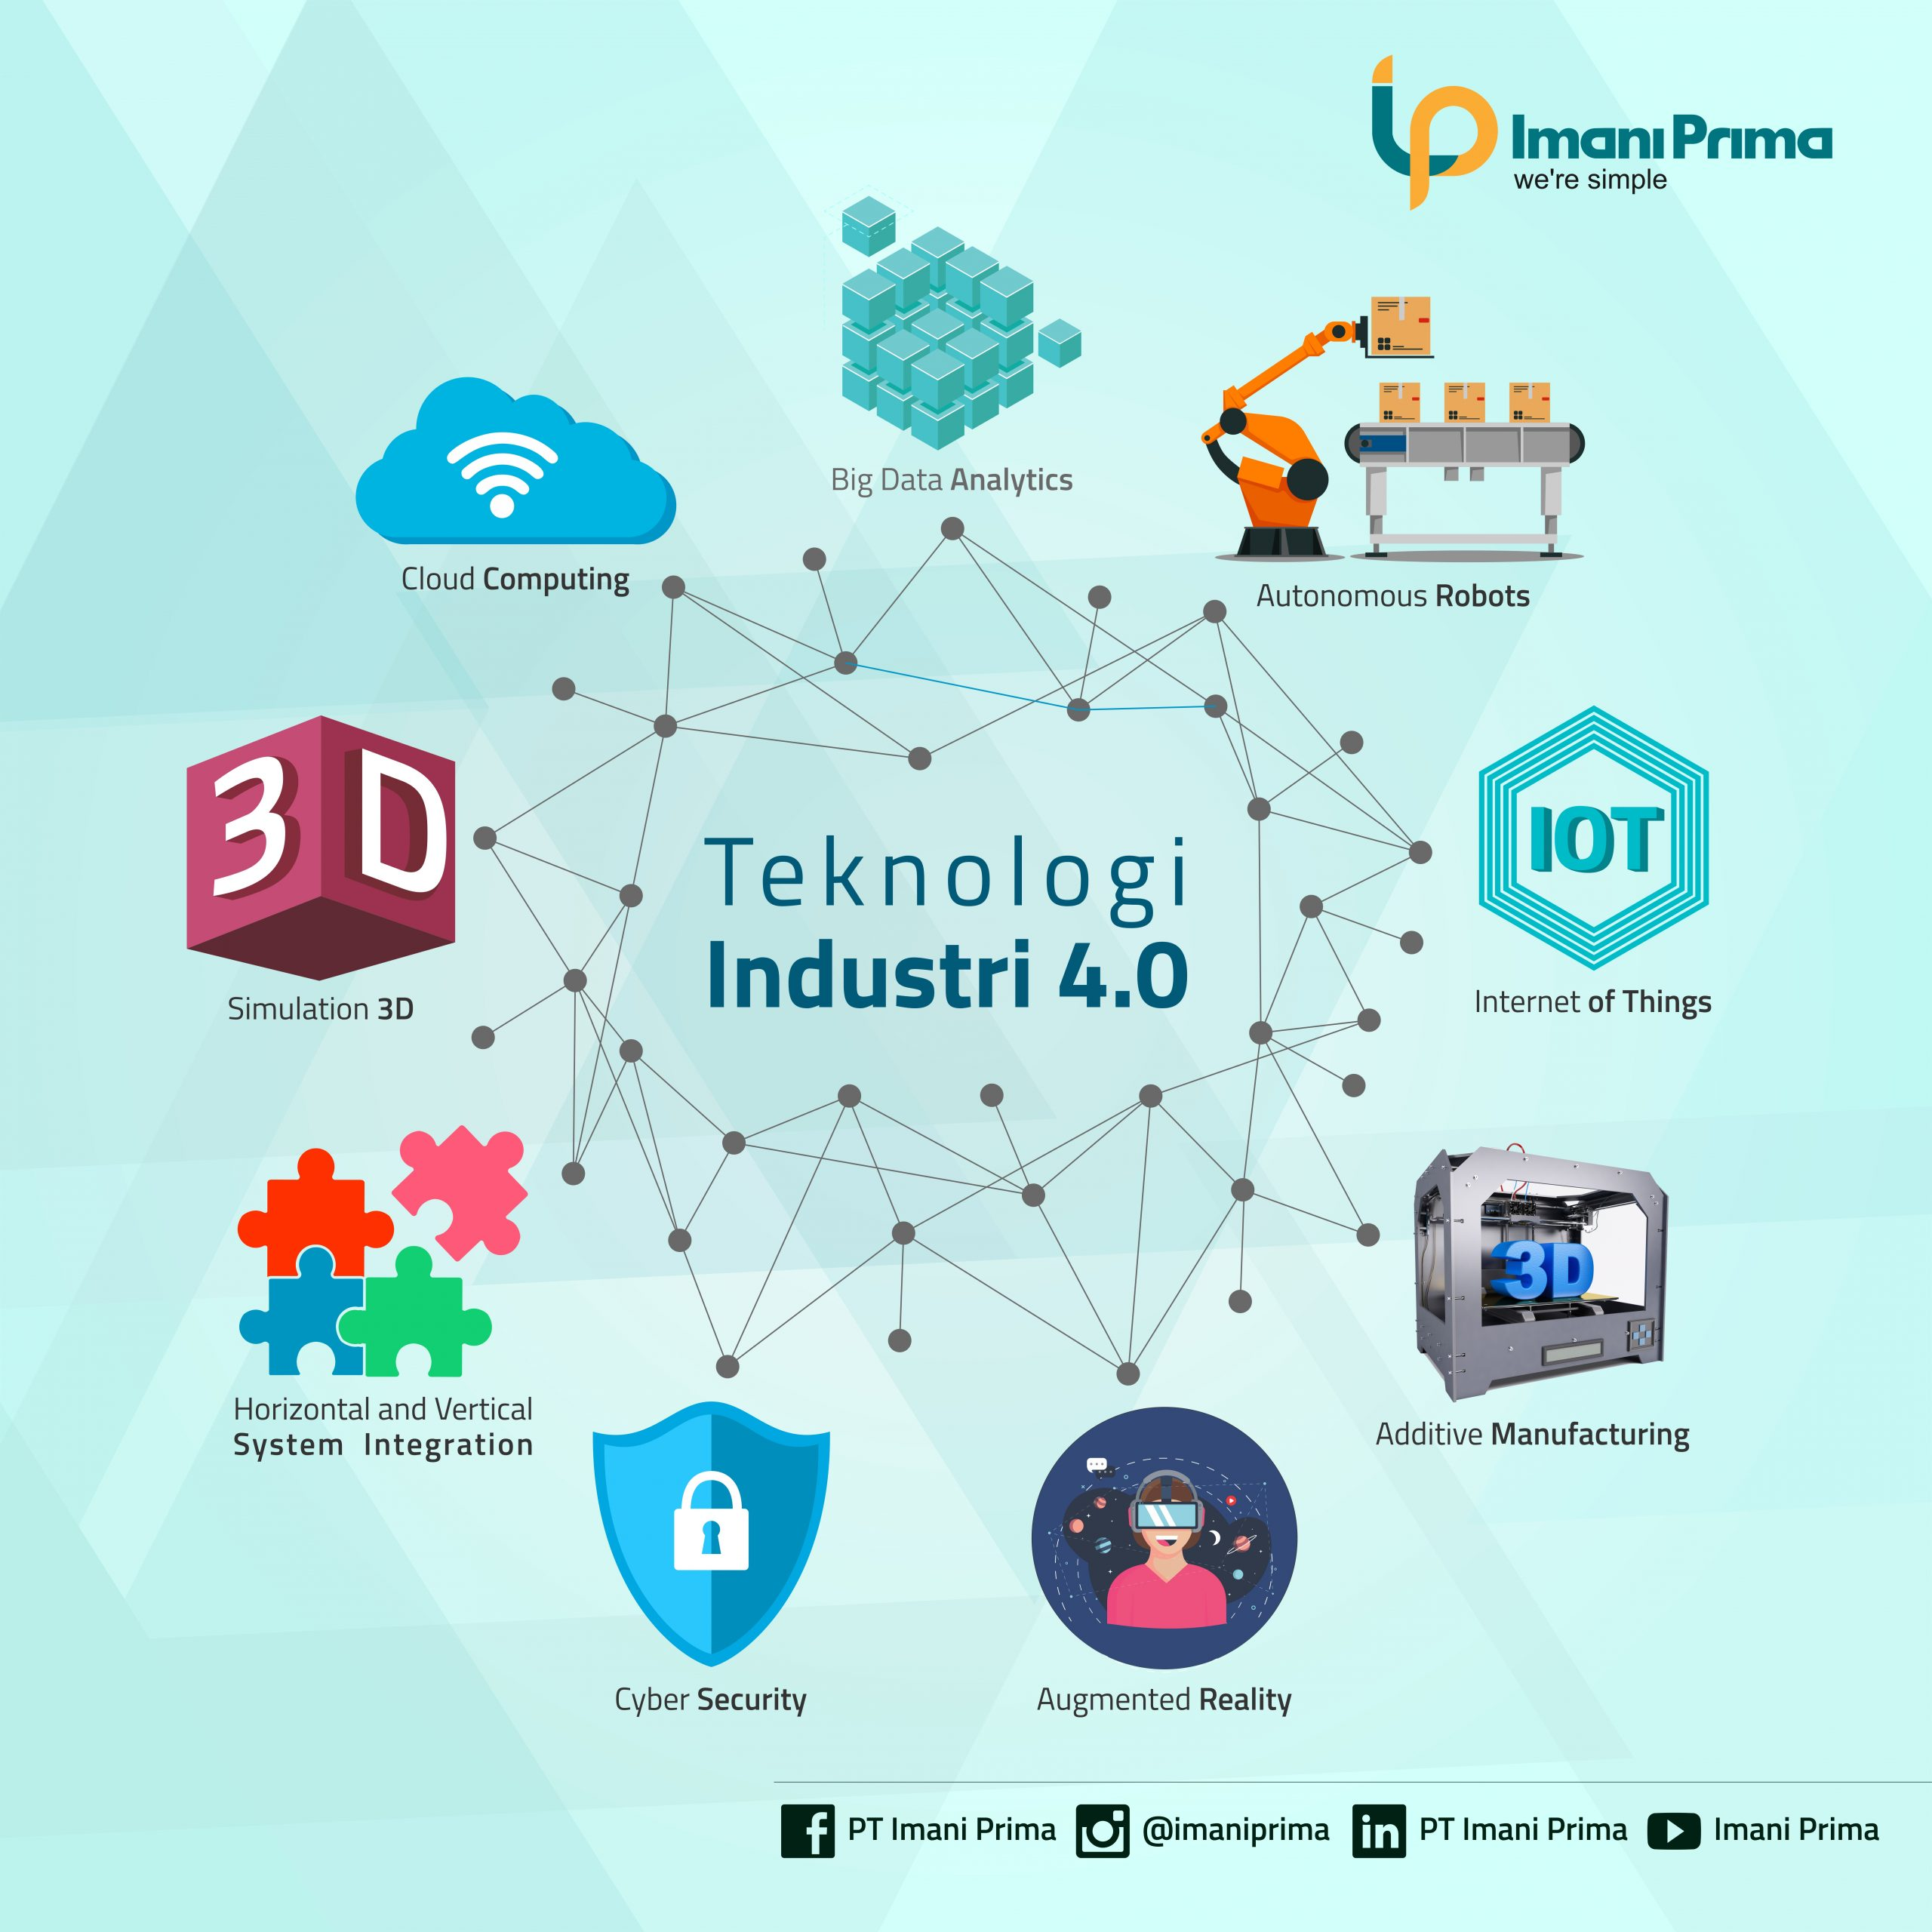 9 Technologies in Industry 4.0